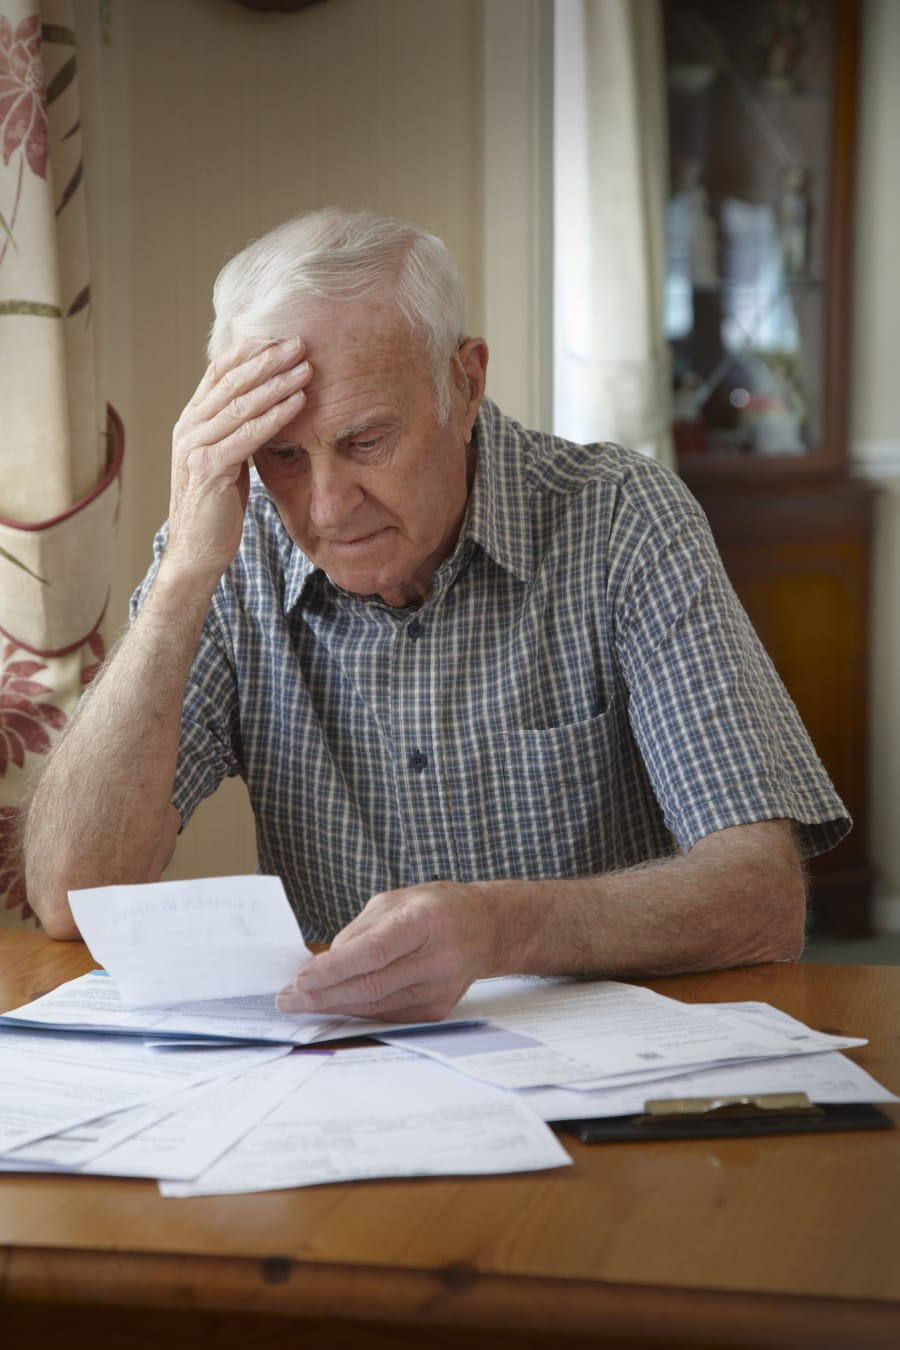 Older Australians renting privately often struggle to purchase necessities and run out of money for food...